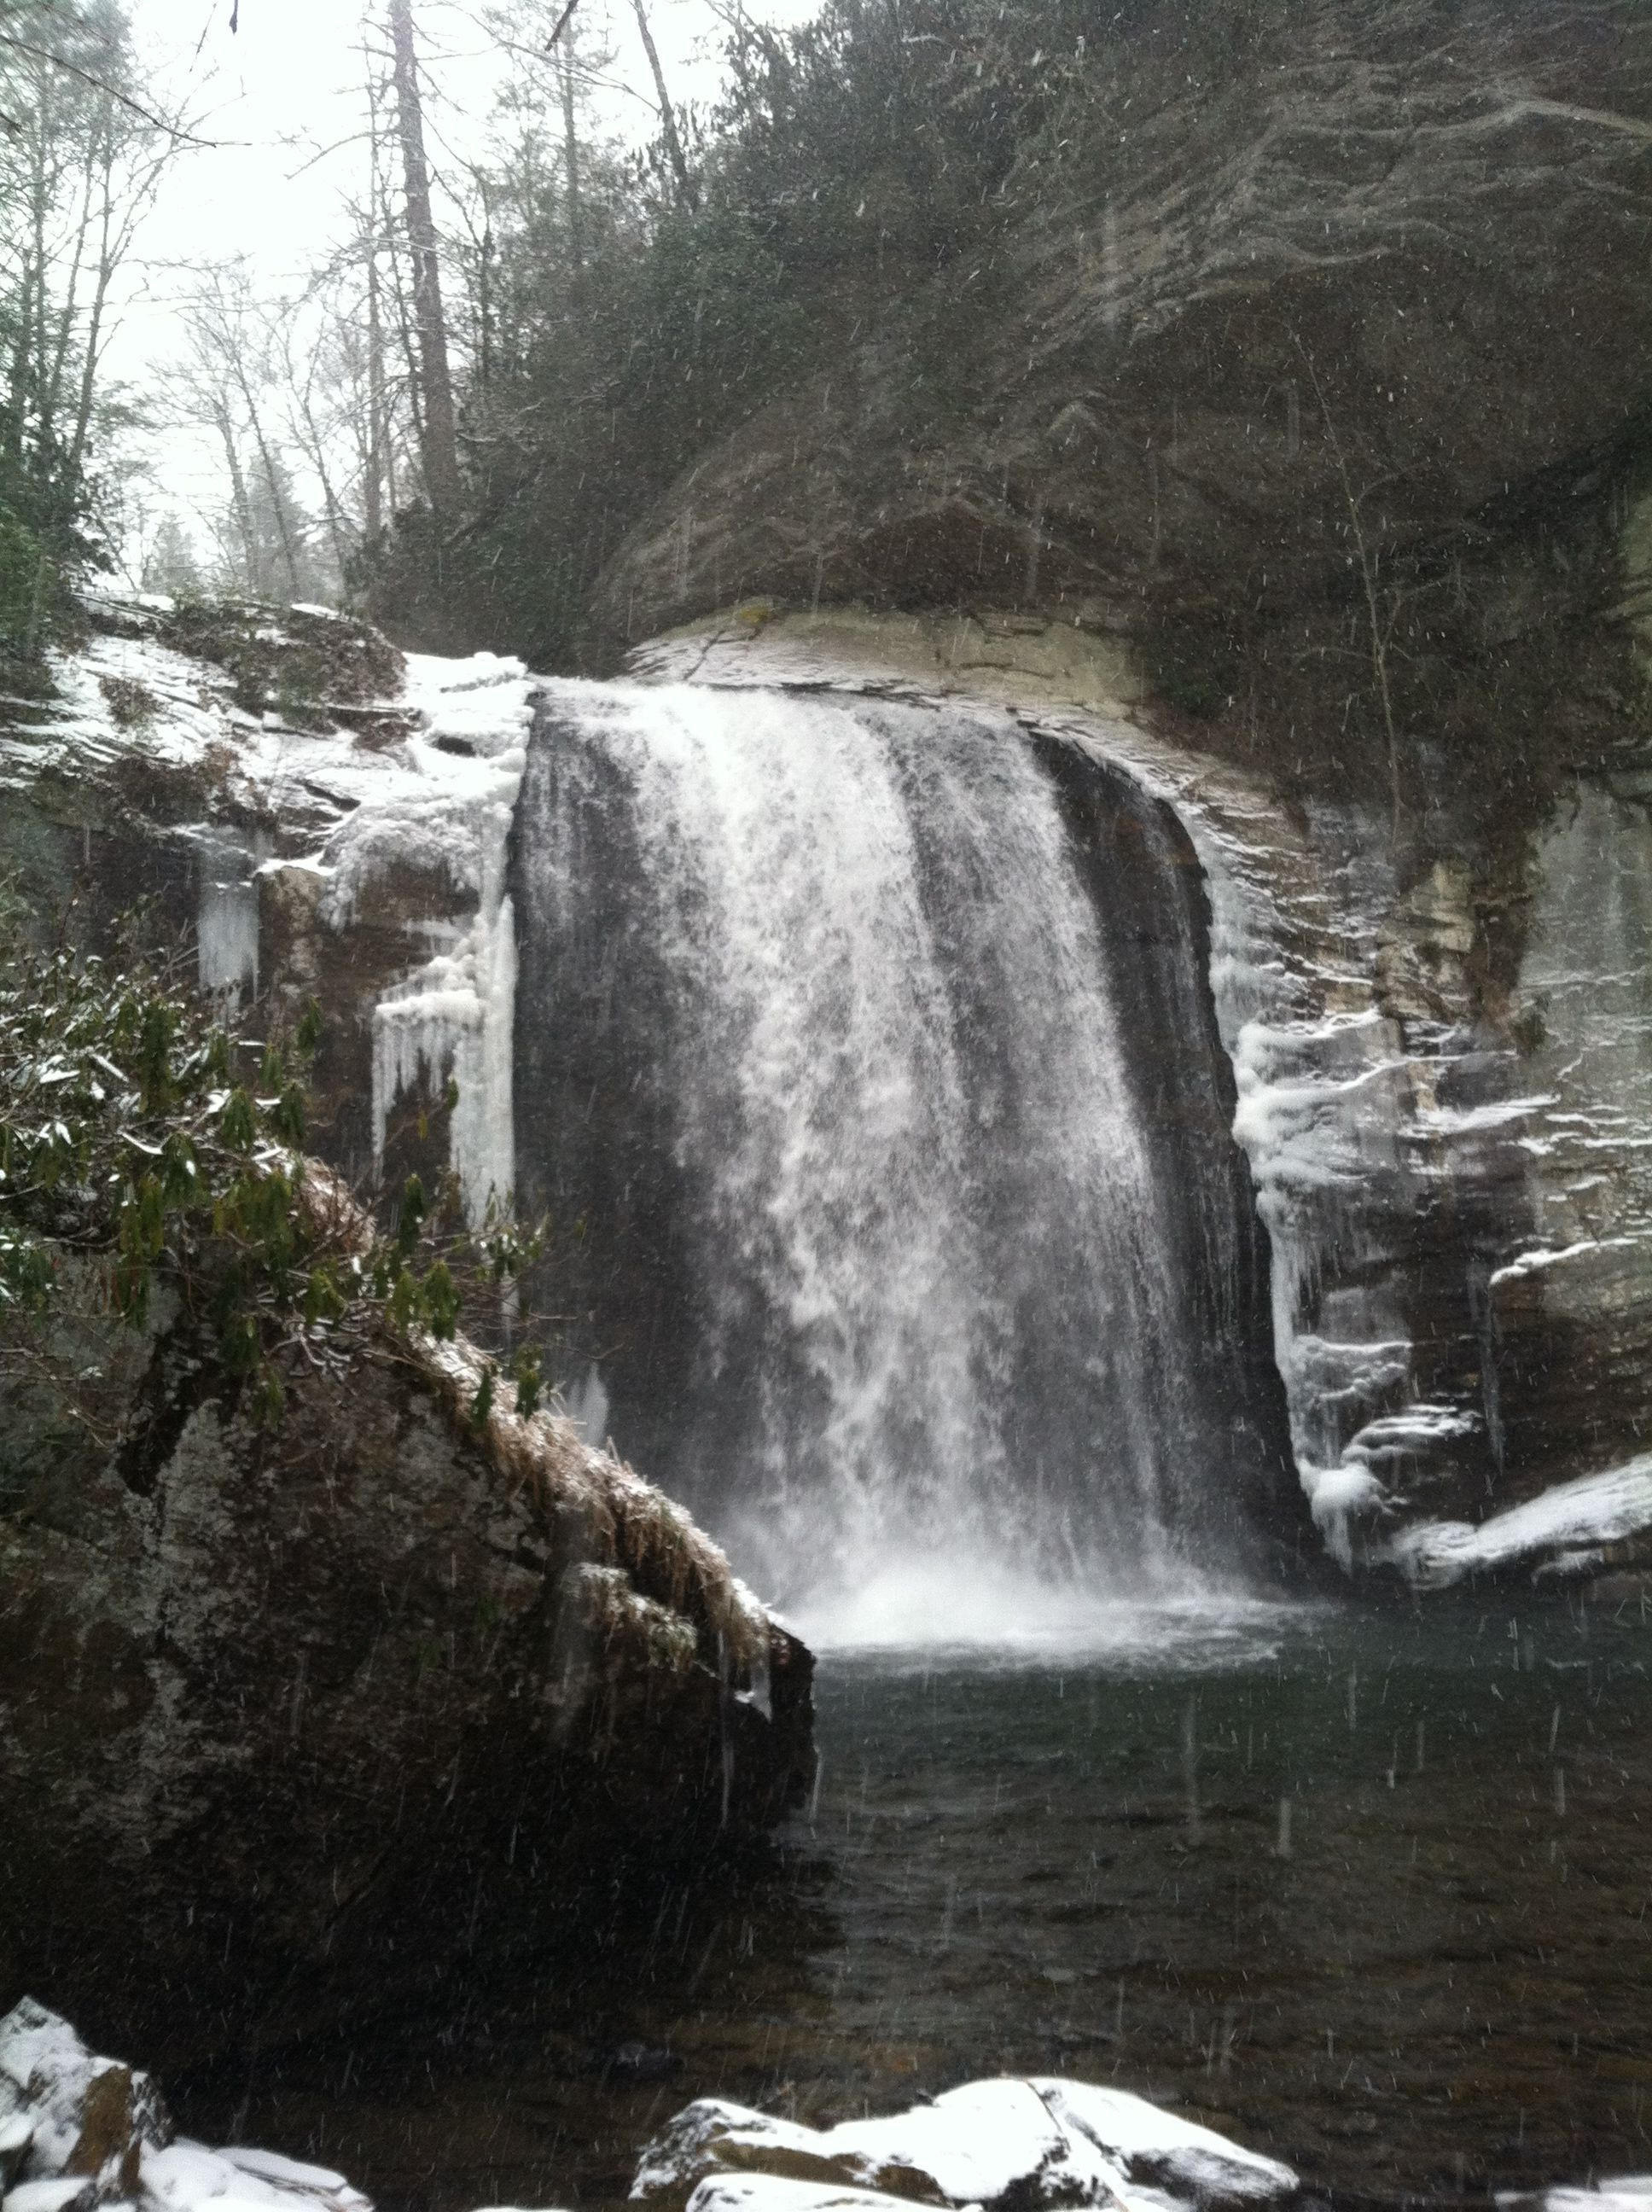 Looking Glass Falls #snowyday in 23 degree weather!!